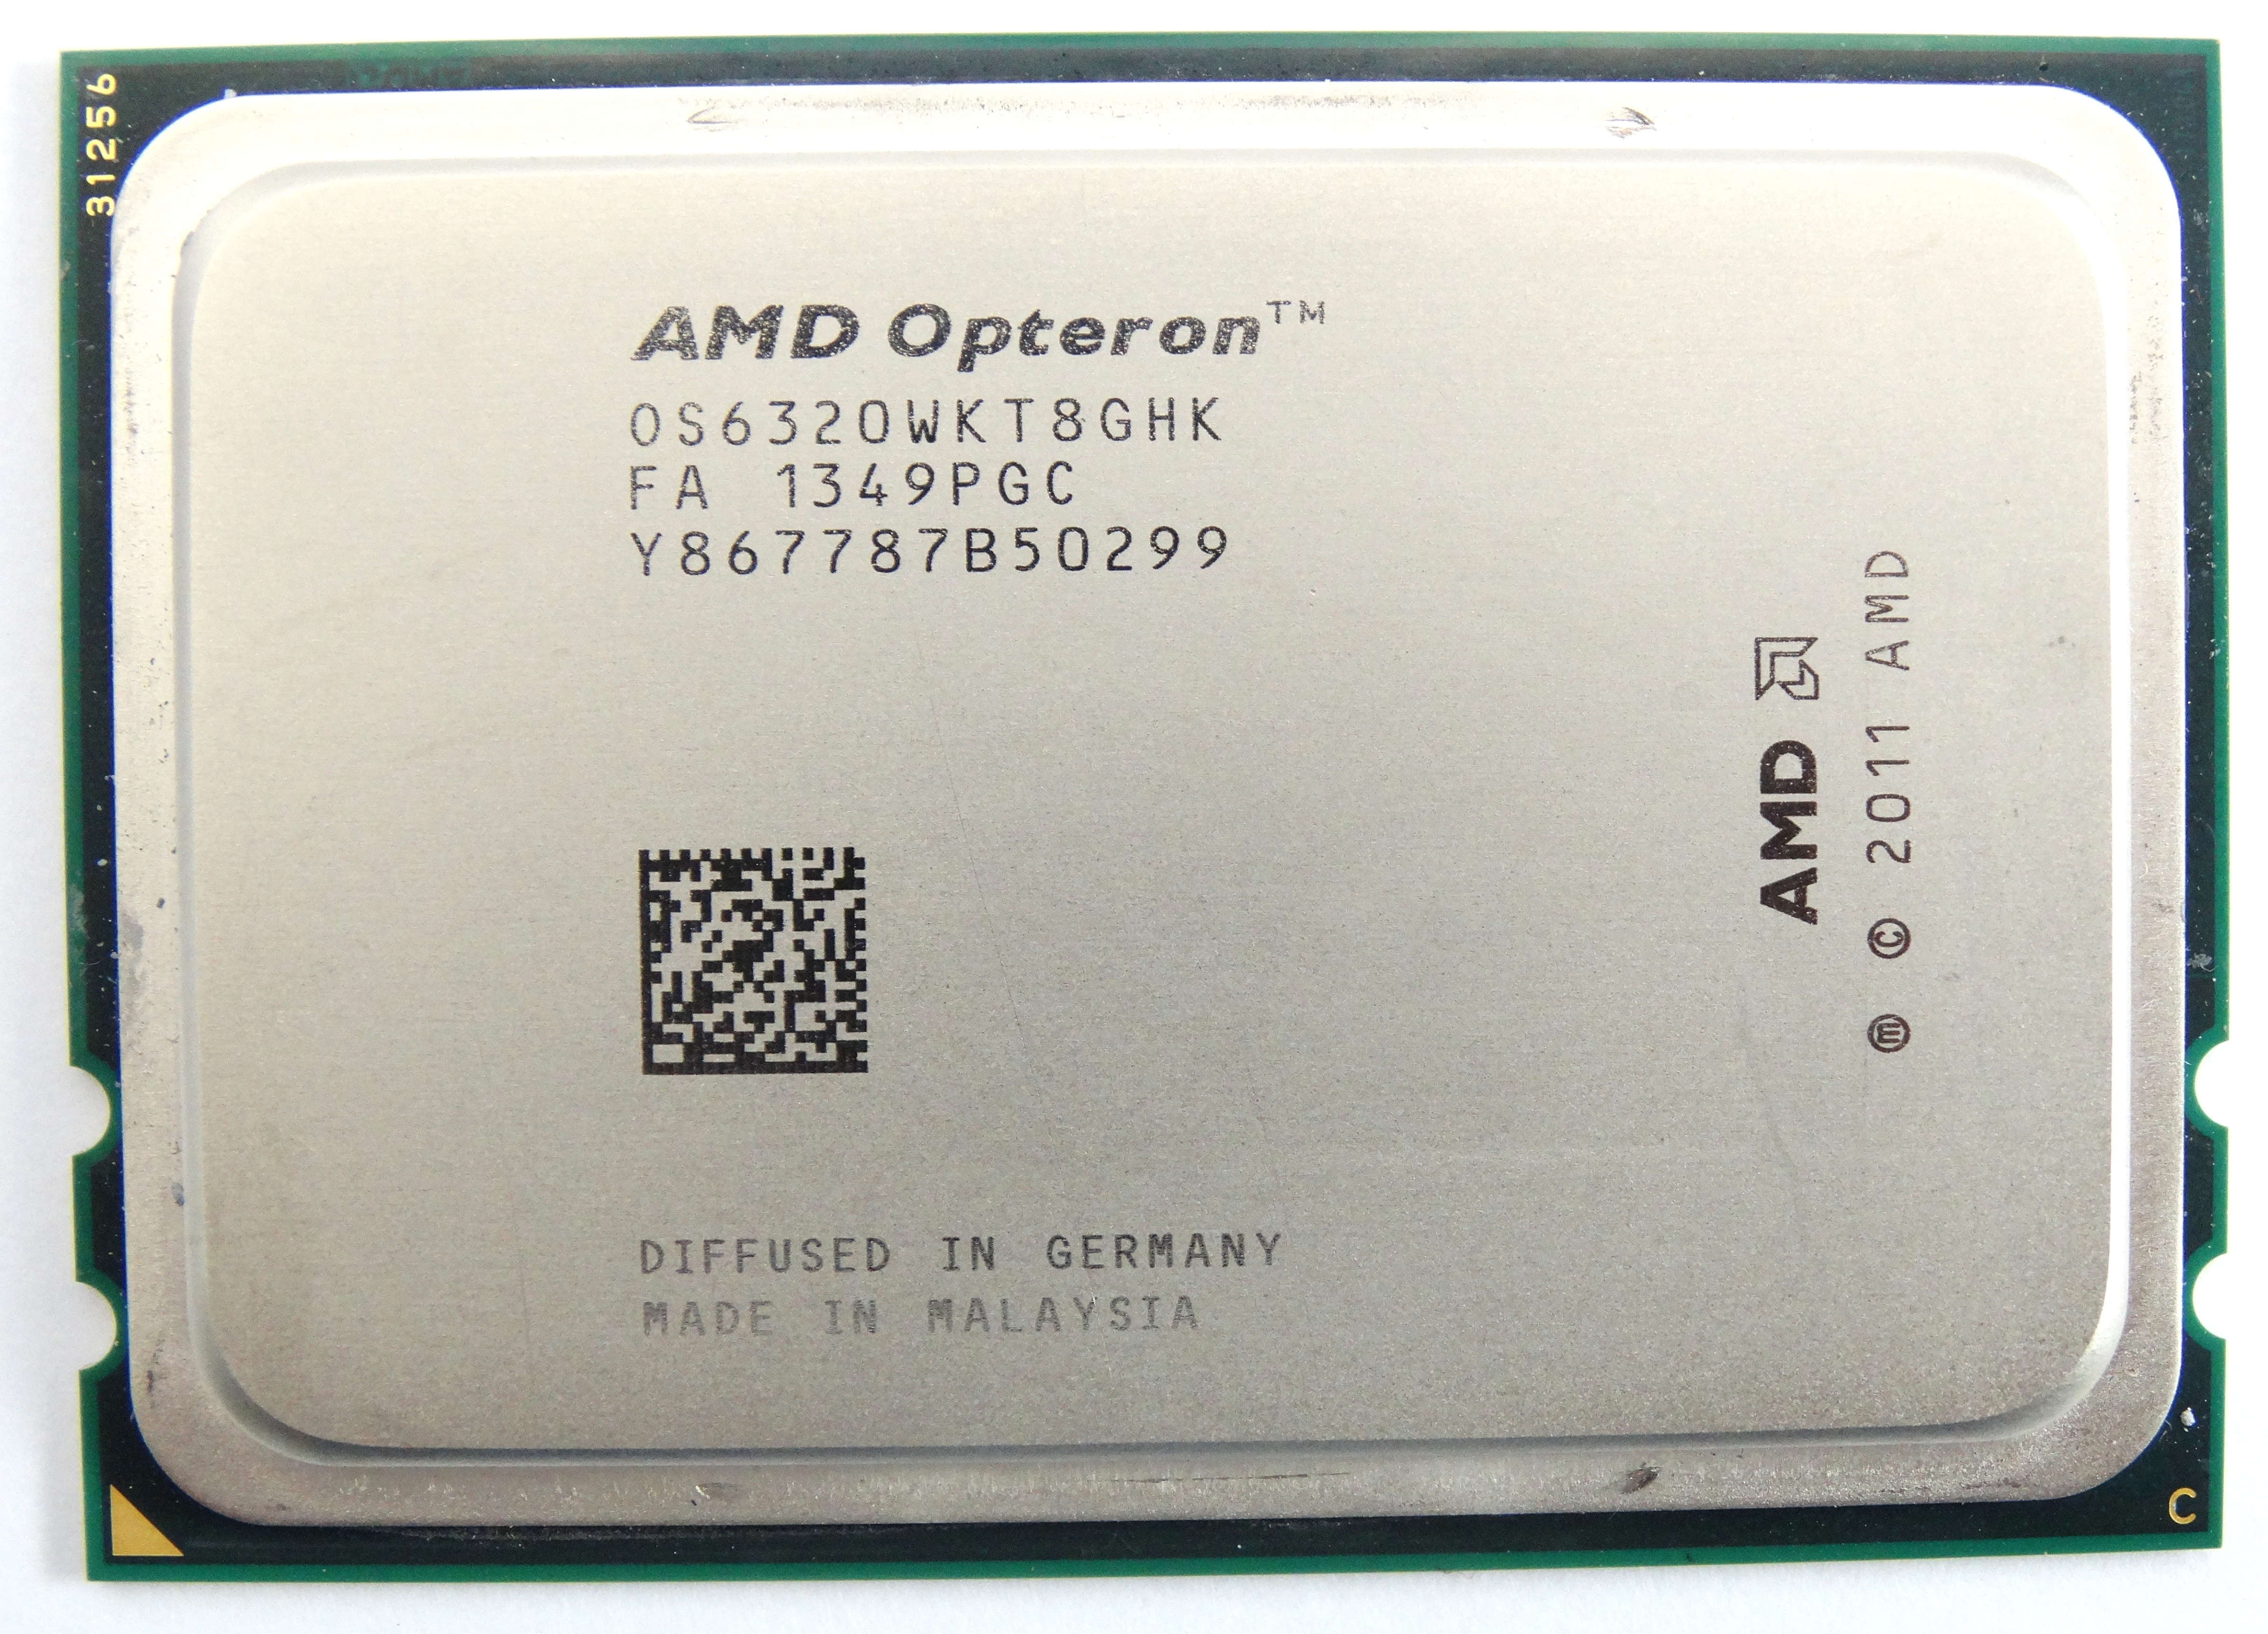 AMD Opteron 6320 2.8GHz 8Core G34 Processor (OS6320WKT8GHK)